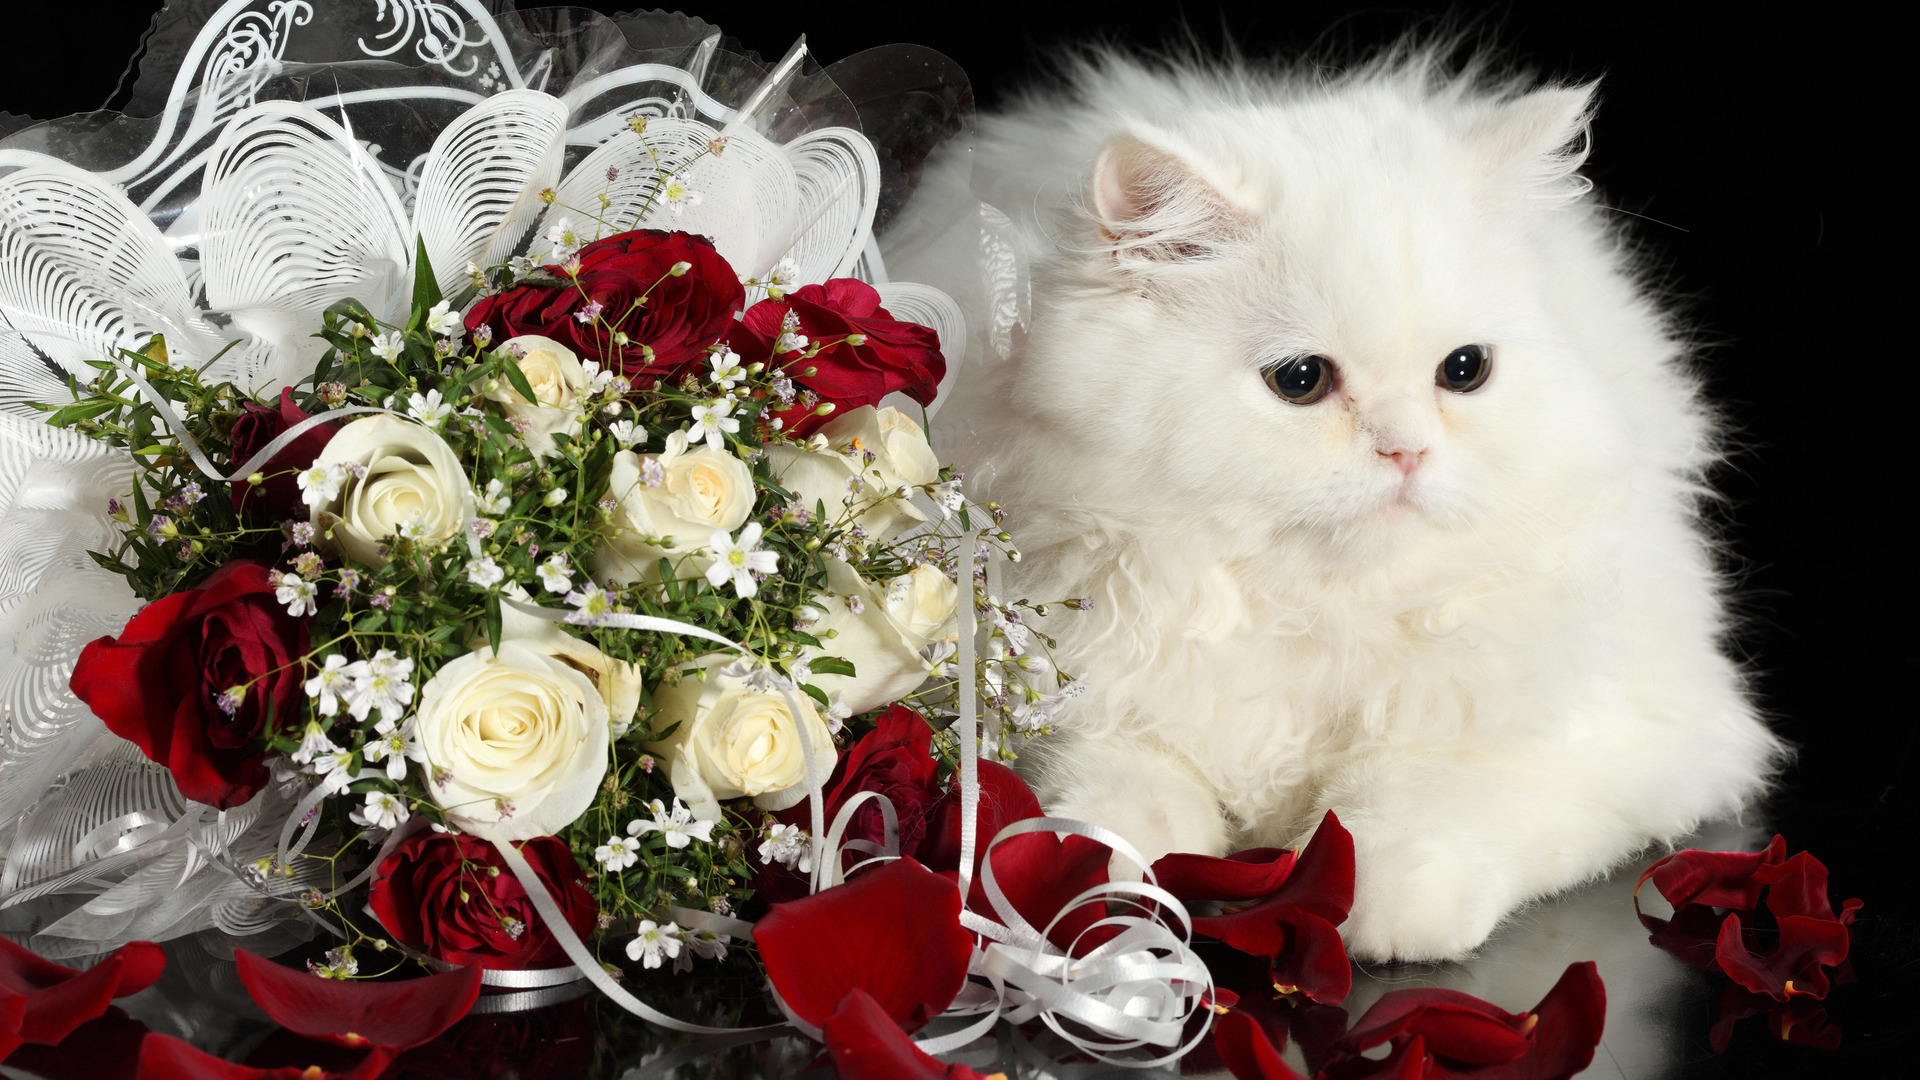 Kitten with Roses HD wallpaper | HD Latest Wallpapers